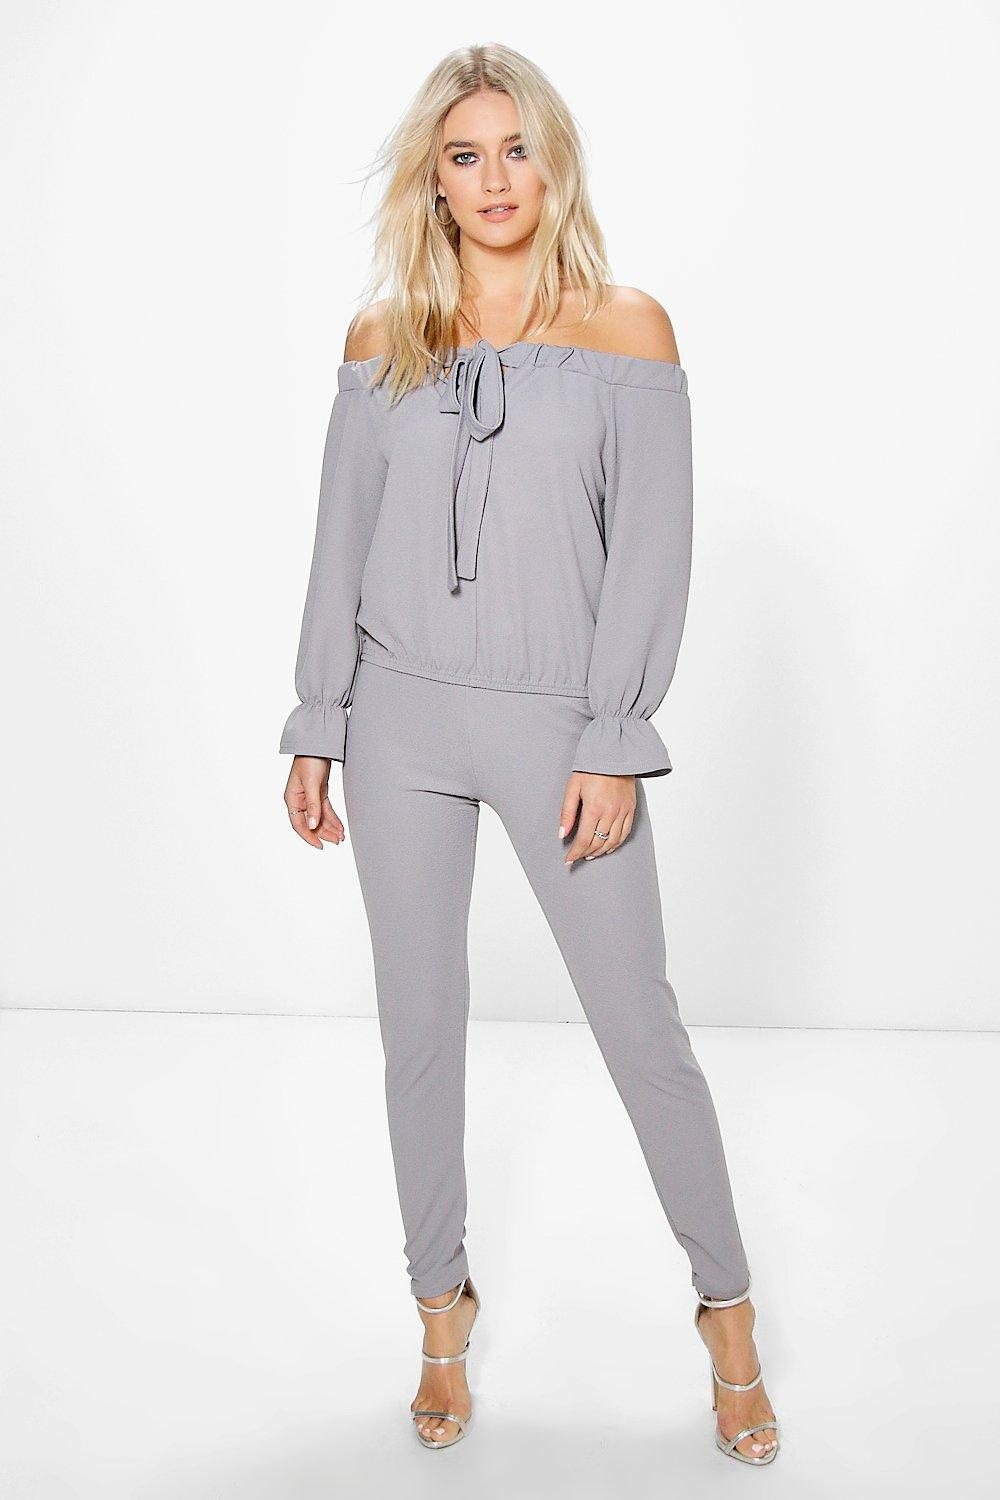 Jenny Off The Shoulder Top And Trouser Co-Ord Set